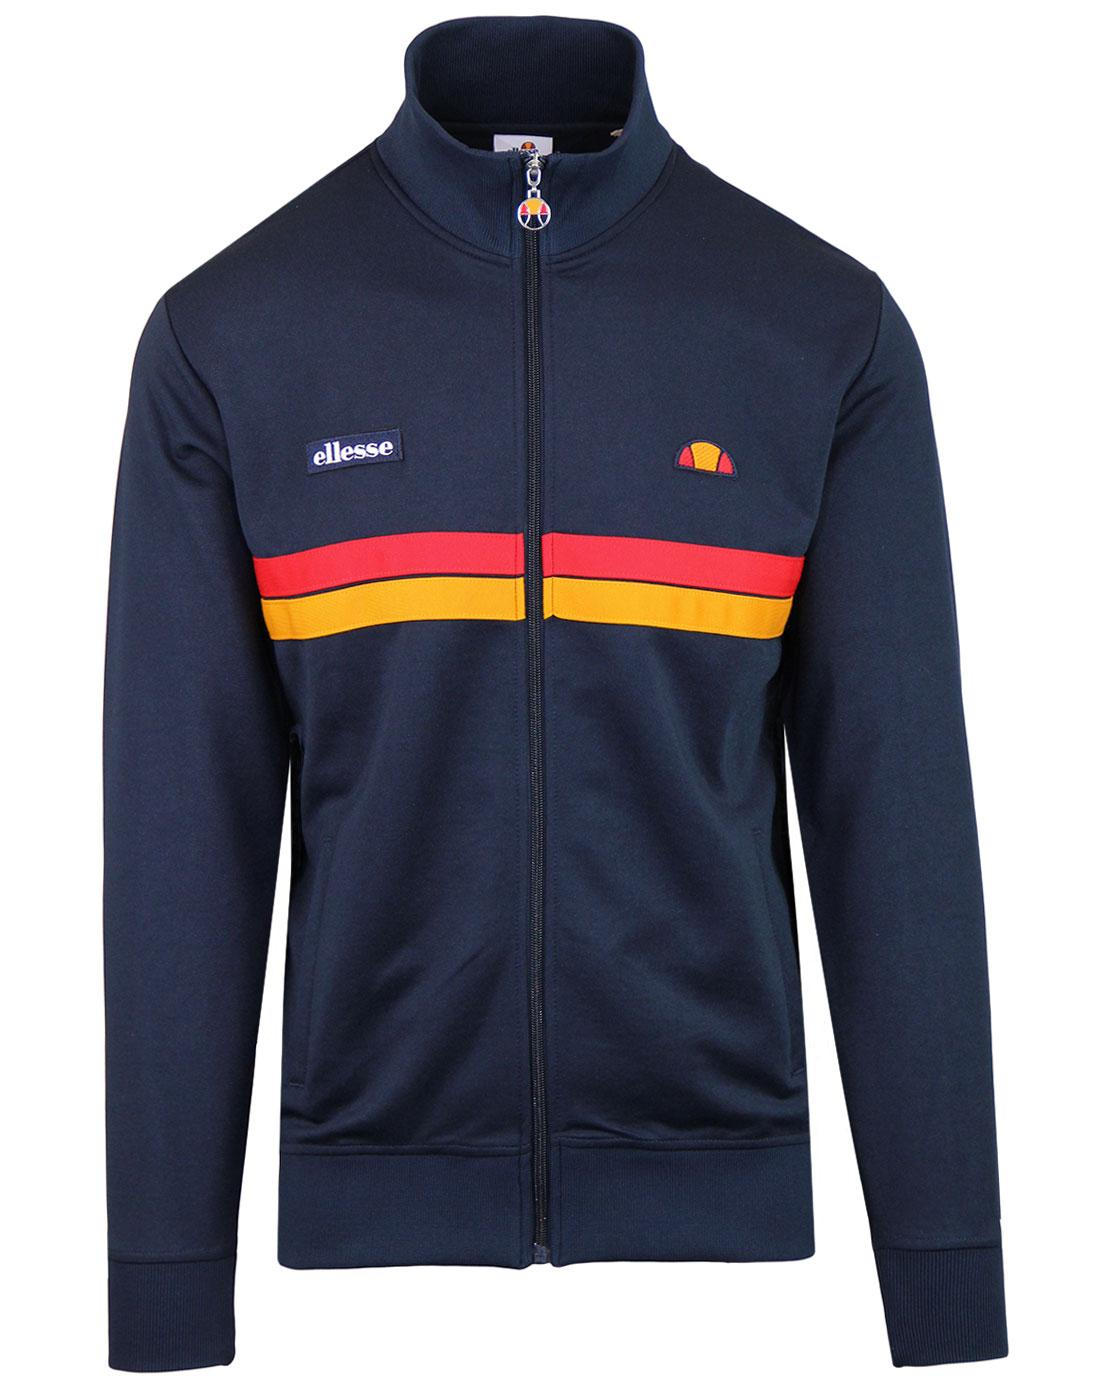 Avidor ELLESSE Retro 80s Funnel Neck Track Top DB